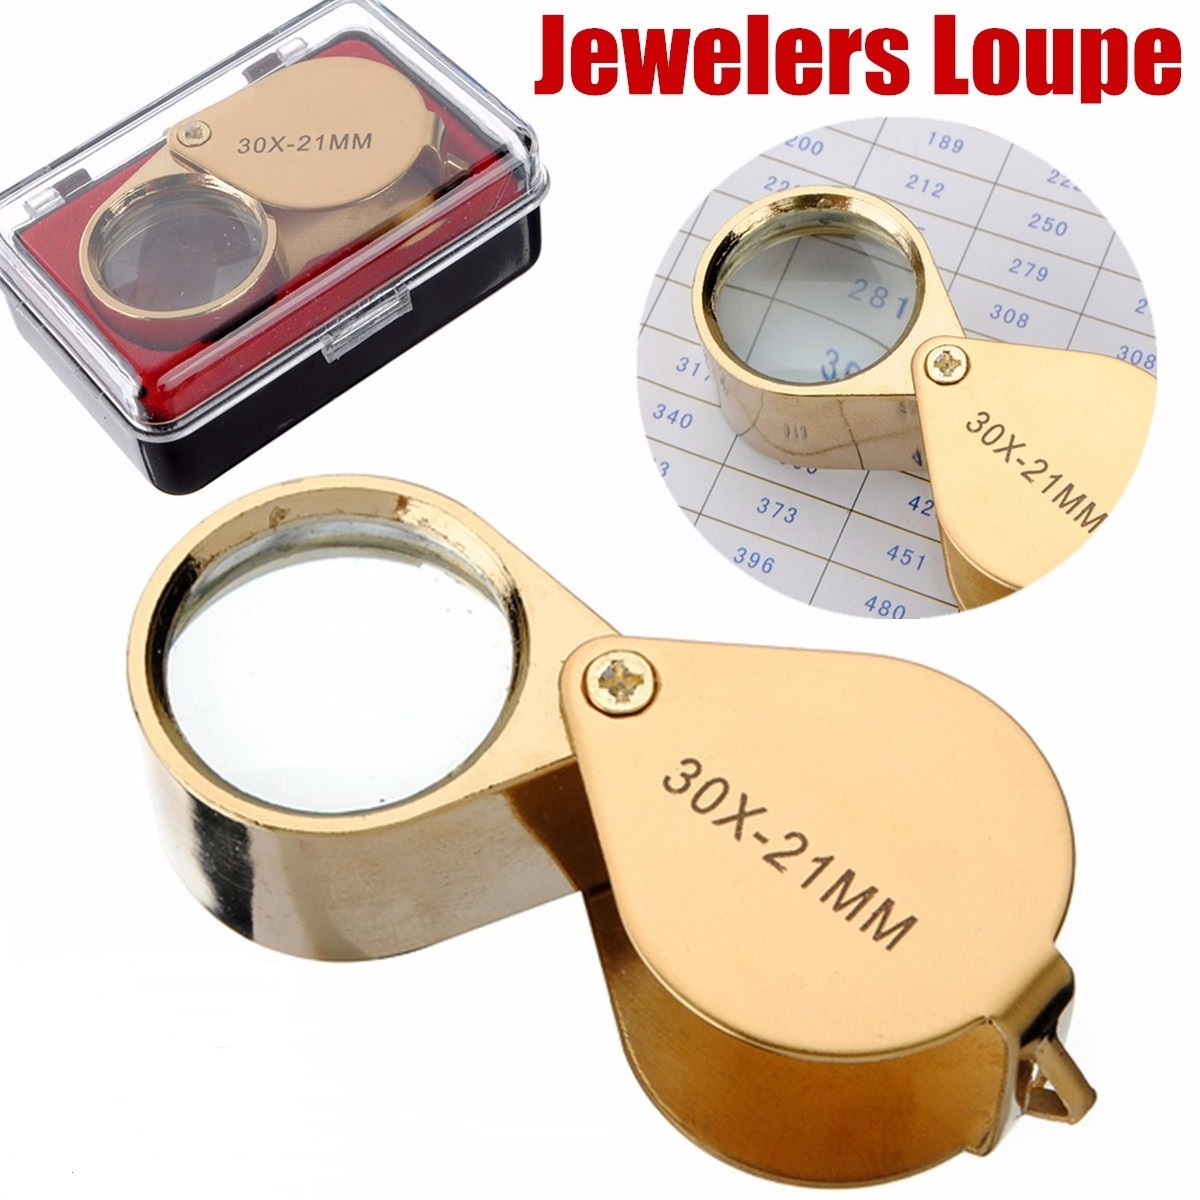 Pocket Jeweler Loupe Magnifier Coins Golden Stamps,Antiques and More 30X Glass Lens Magnifying Glass for Jewelry